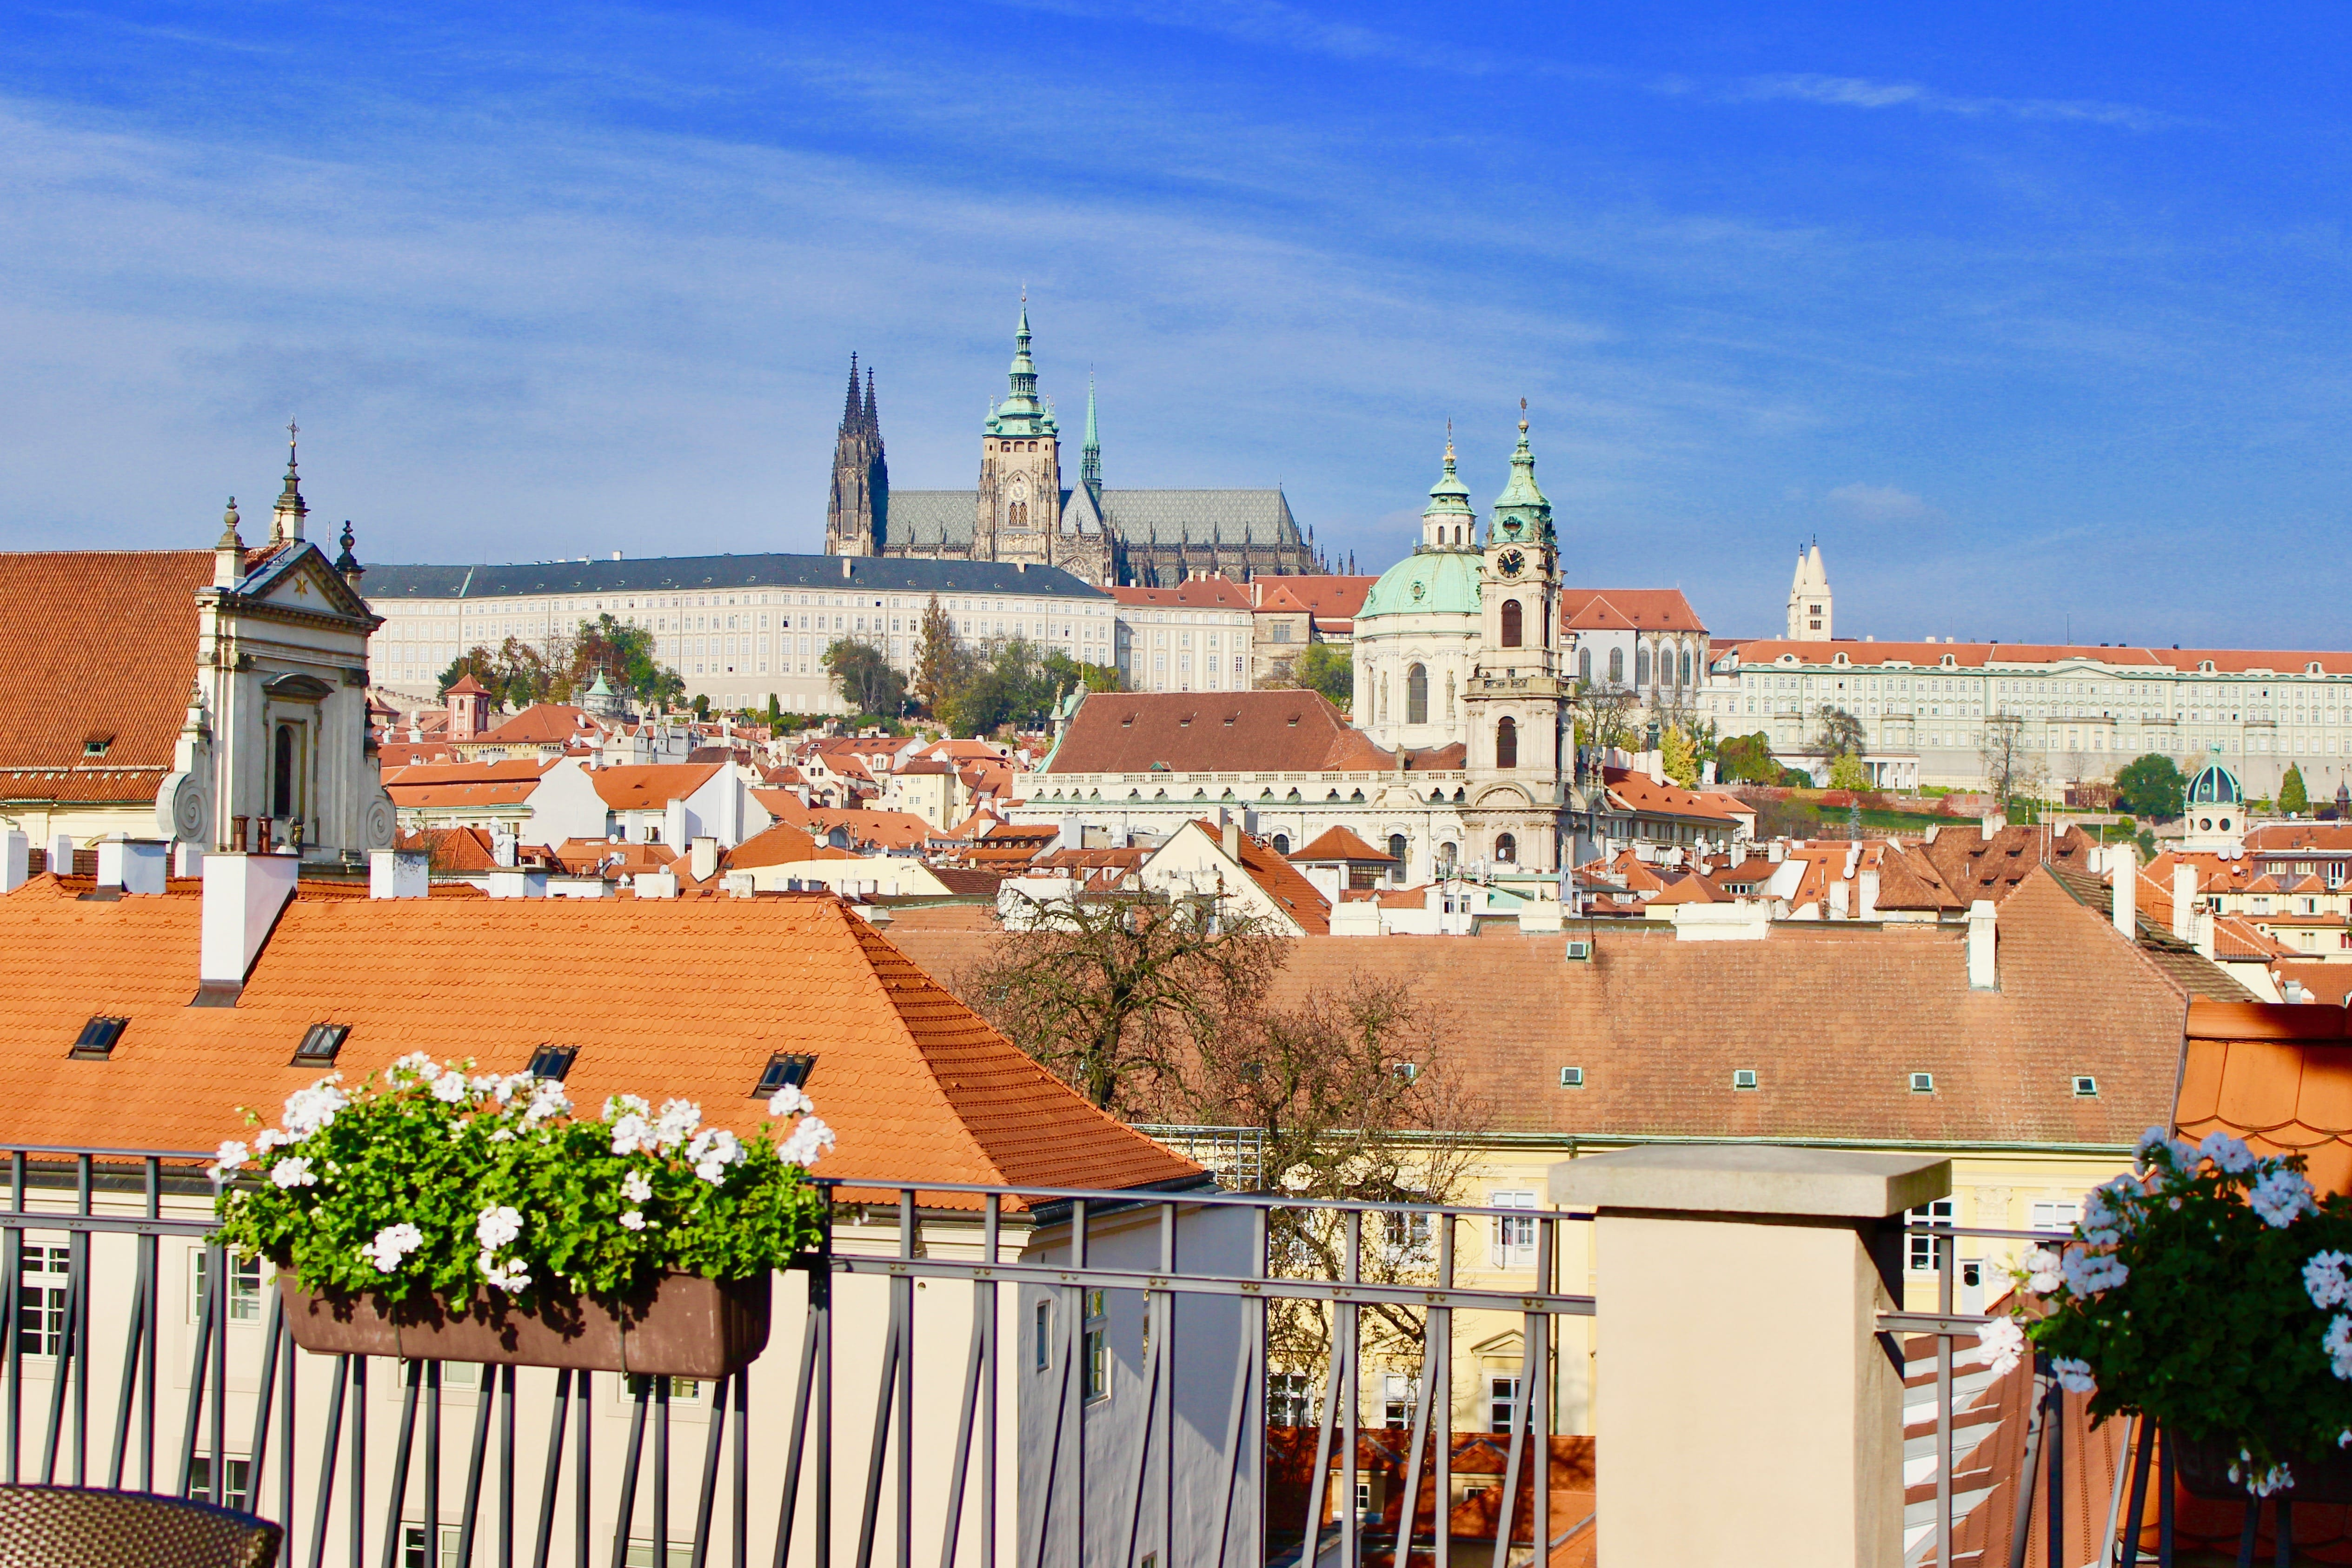 View of the Prague Castle from the Mandarin oriental in Prague